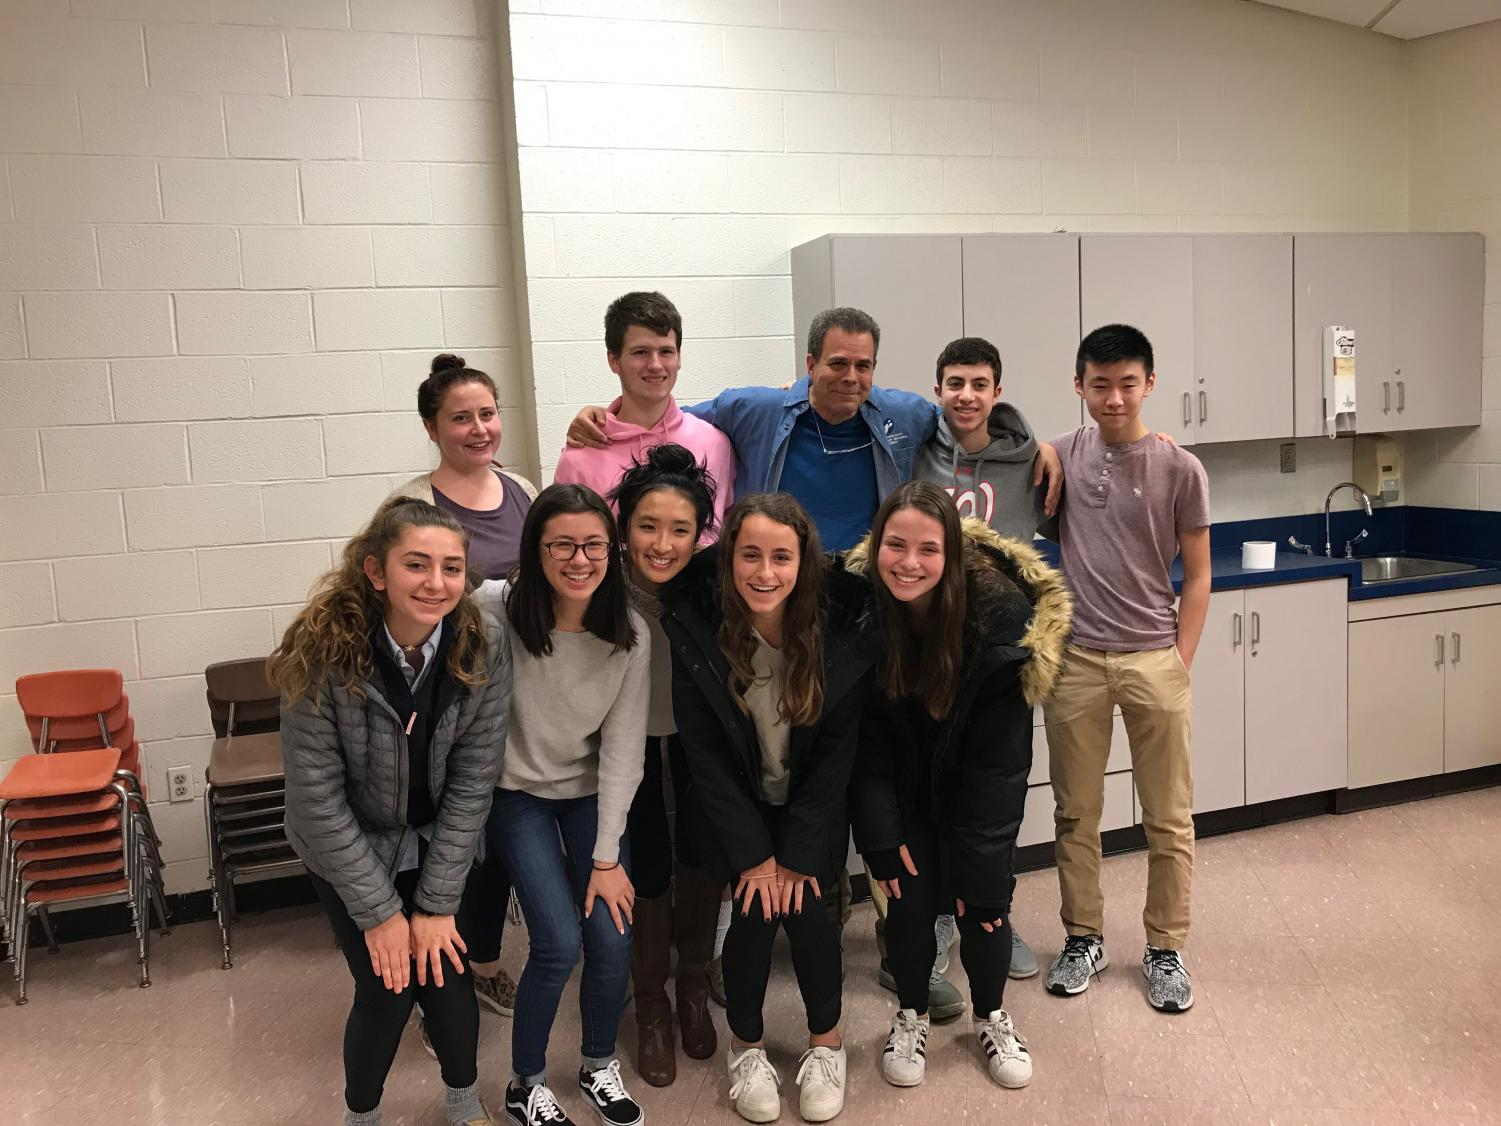 WCHS students devote time into volunteering at the Potomac Community Center. Left to Right: Beth Coffman, Assistant Director of Potomac Community Center, Luke Sumberg,  Sydney Rodman, Macafie Bobo, Abbey Zheng, Julia Greenberg, Jordyn Reicin, Peter Selikoqirz, Director of Potomac Community Center, Adam Horowitz, Andrew Chan.